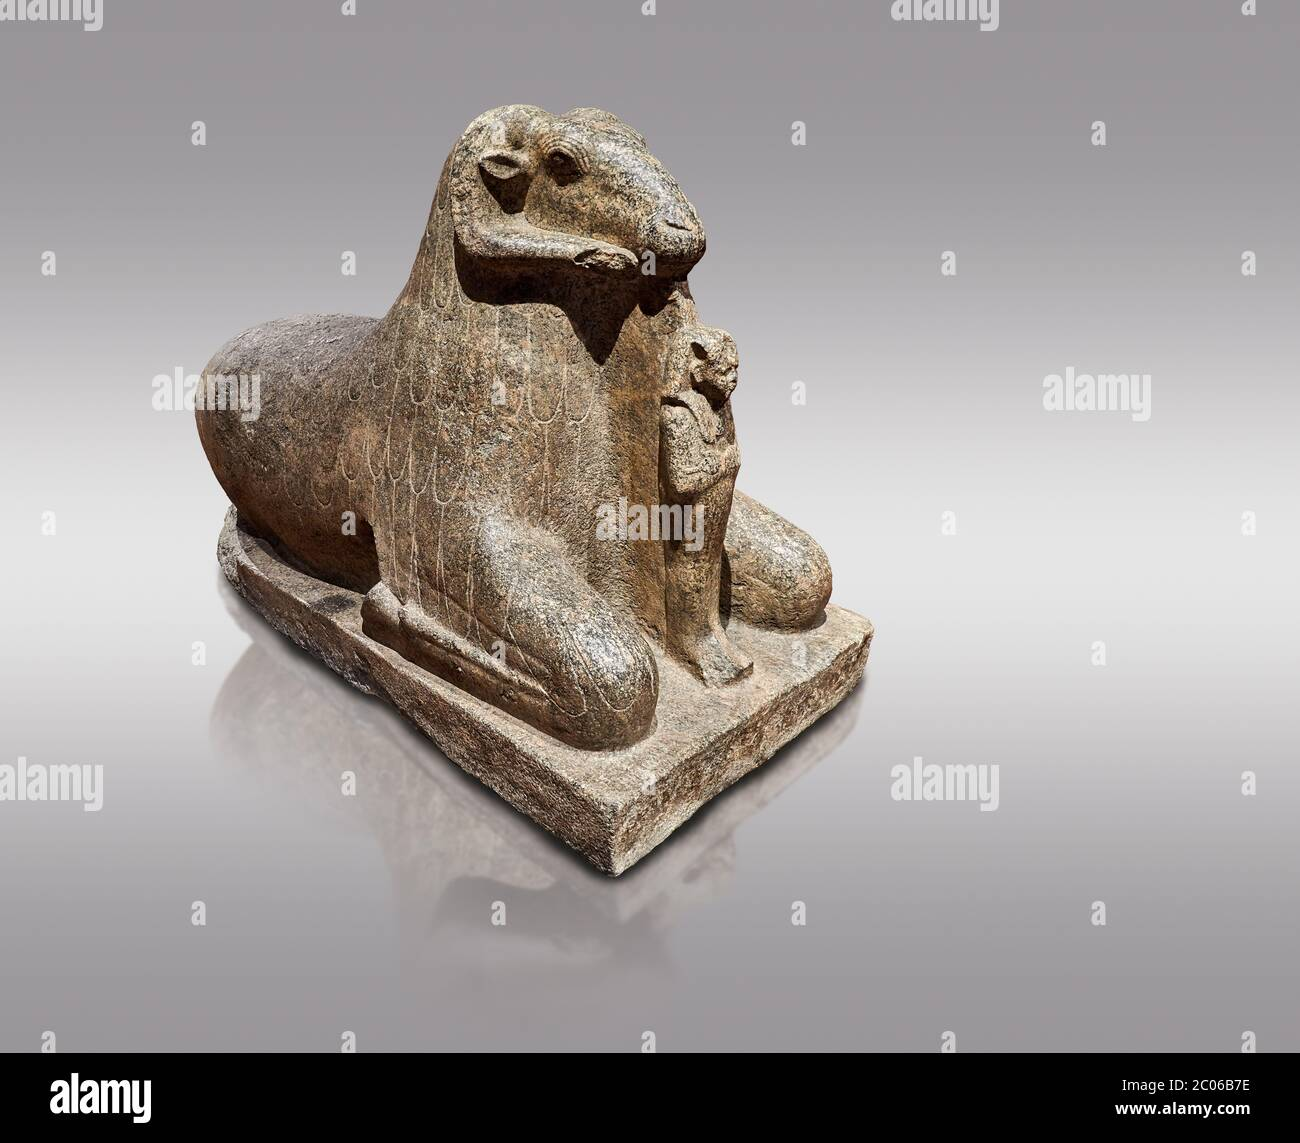 Ancient Egyptian statue of a Ram proytecting King Amenhotep III, granite, New Kingdom, early 18th Dynasty (1390-1353), Karnak, Temple of Mut. Egyptian Stock Photo